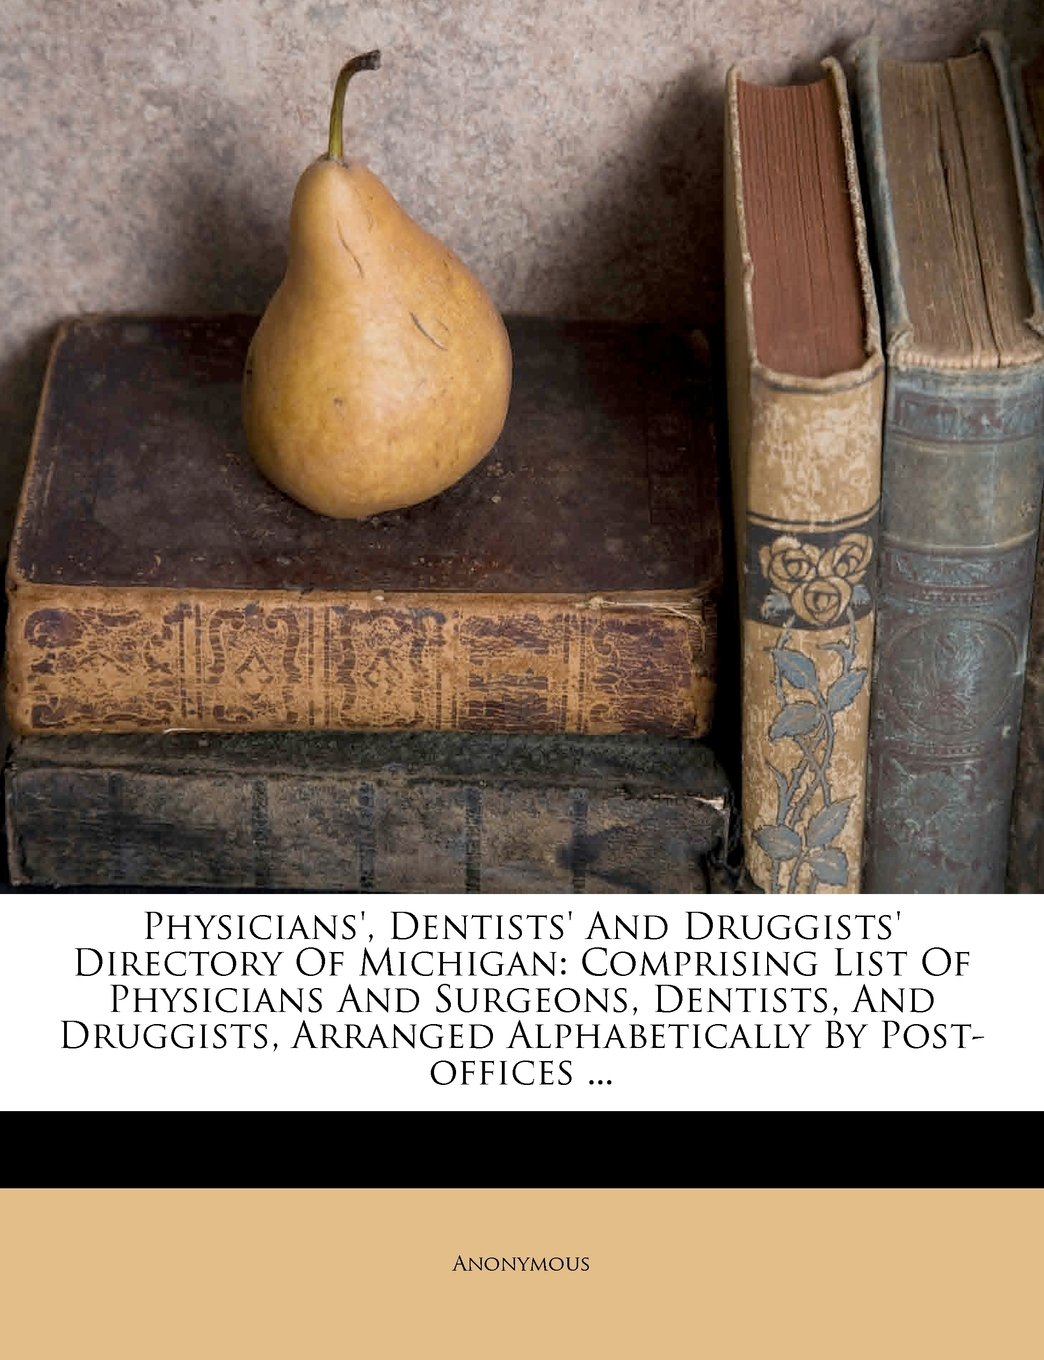 Download Physicians', Dentists' And Druggists' Directory Of Michigan: Comprising List Of Physicians And Surgeons, Dentists, And Druggists, Arranged Alphabetically By Post-offices ... ebook